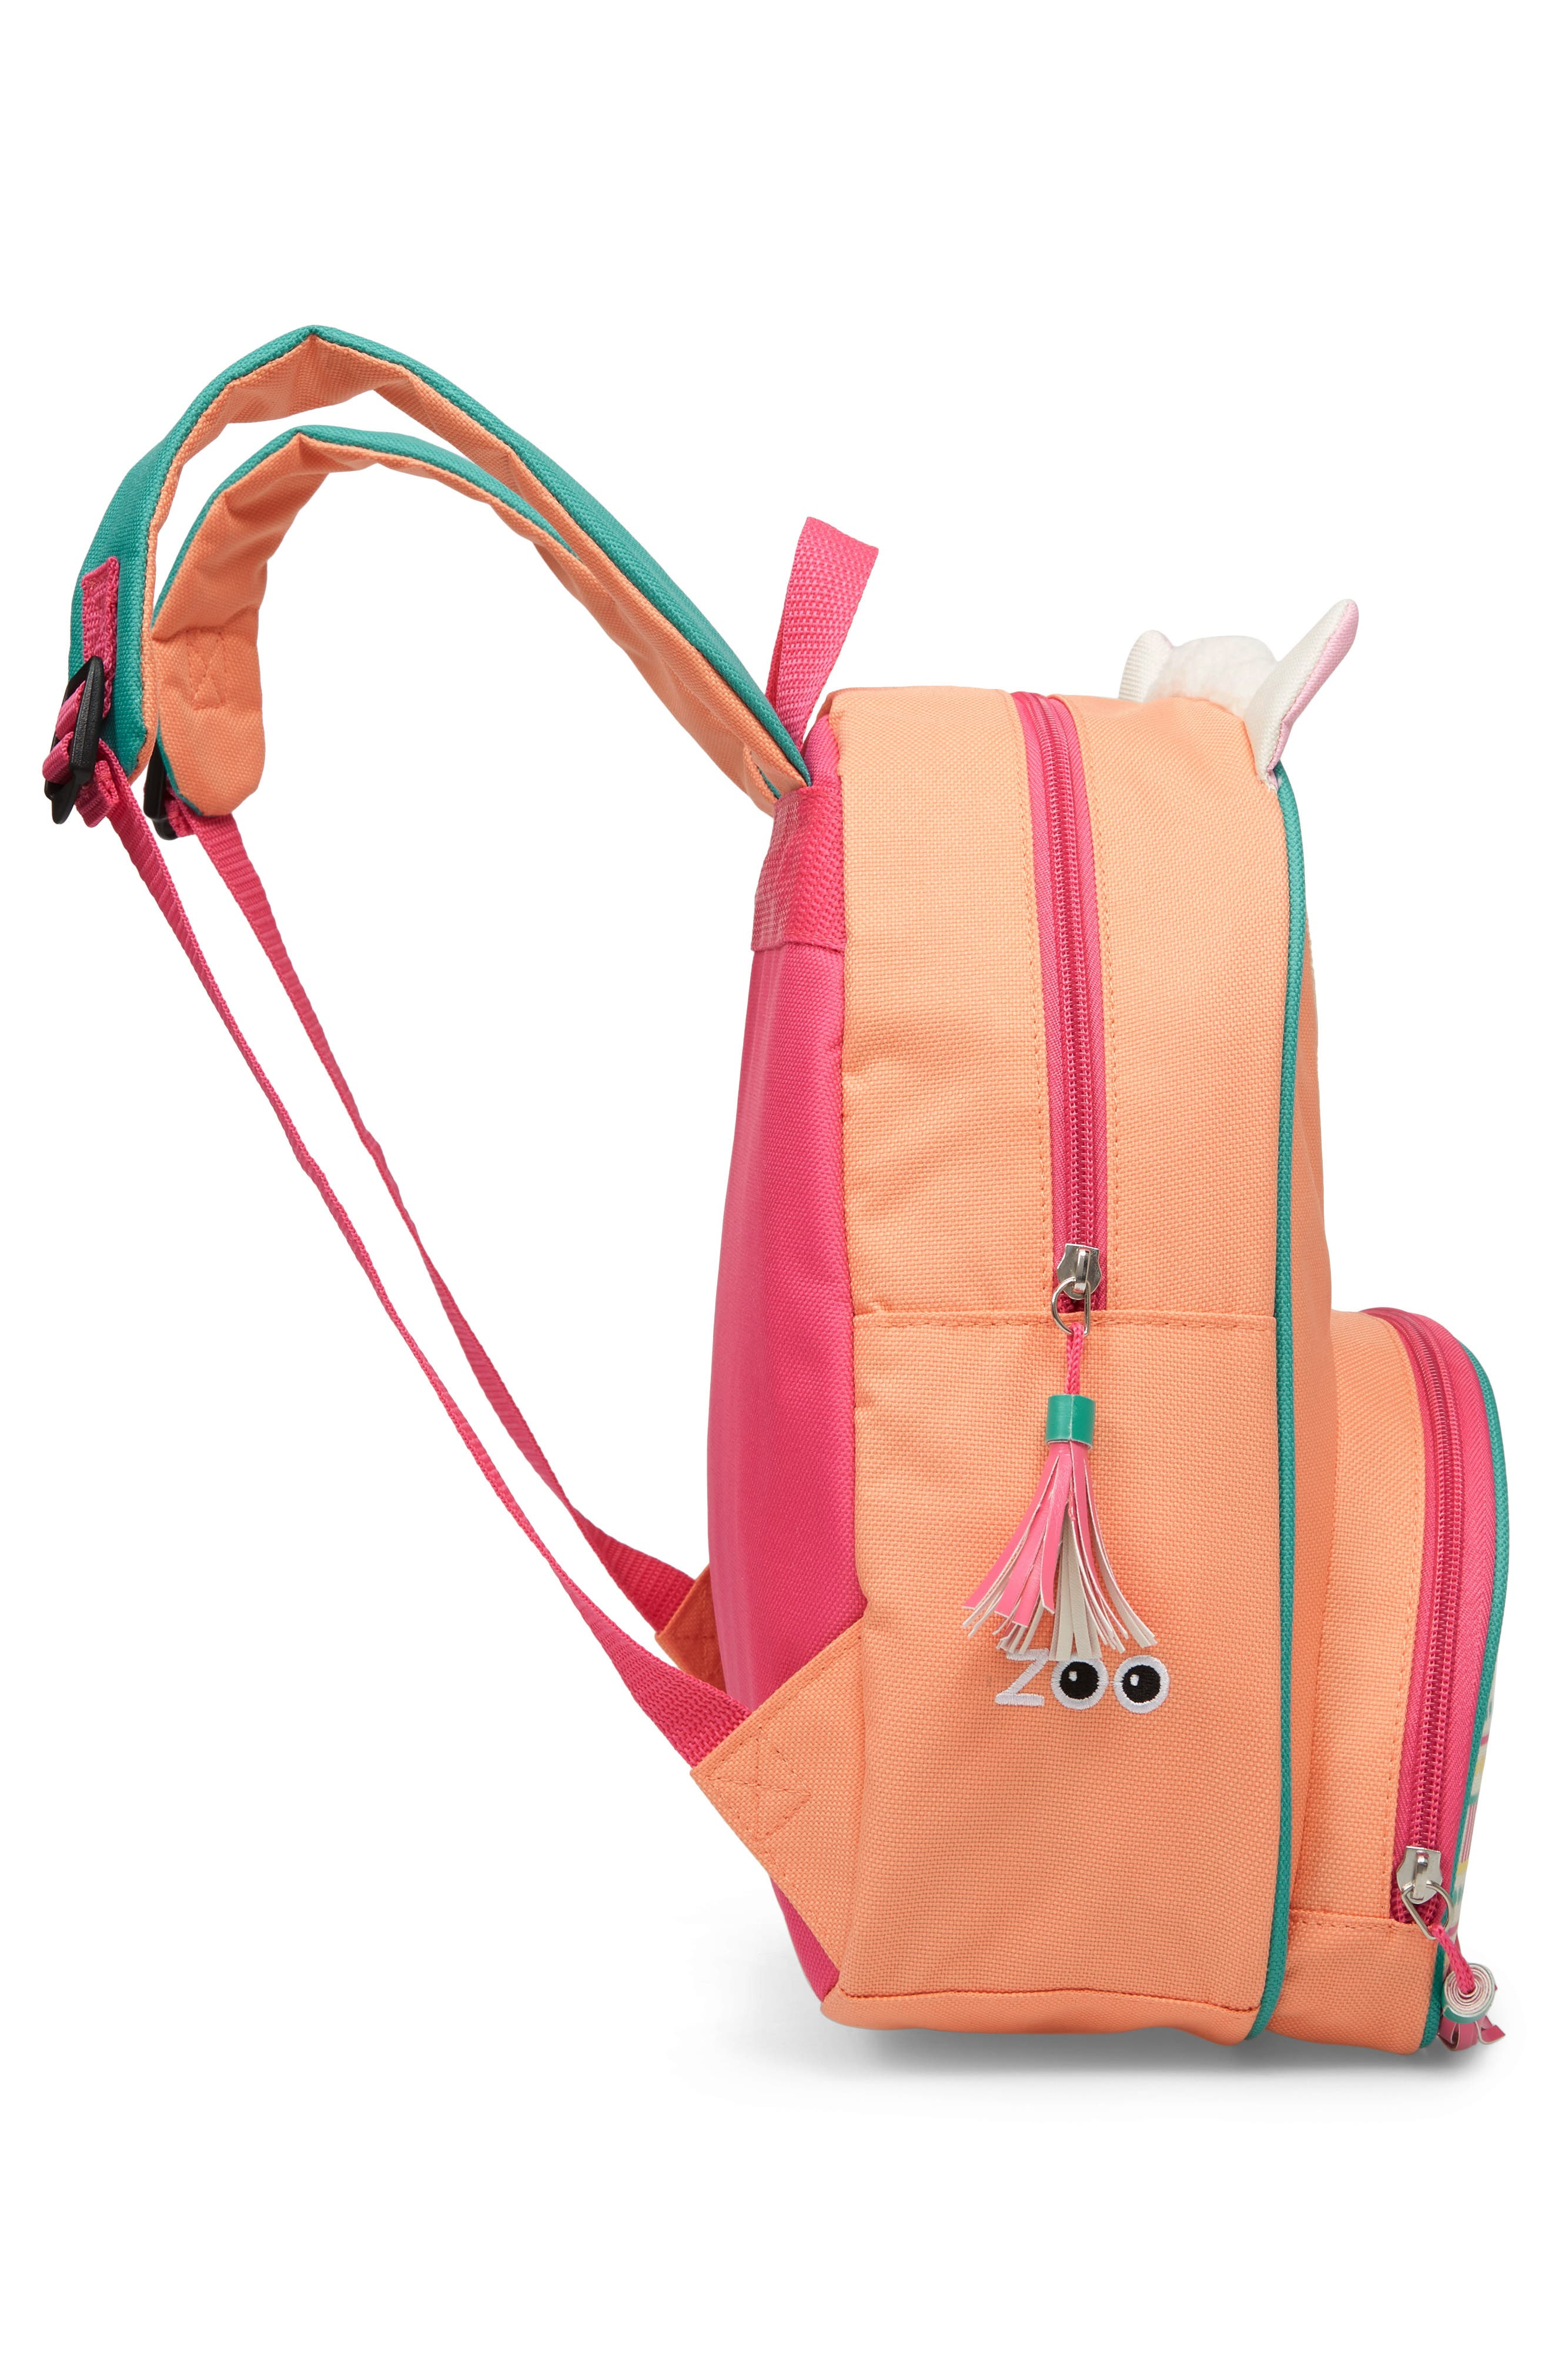 Zoo Pack Backpack,                             Alternate thumbnail 3, color,                             Pink Multi